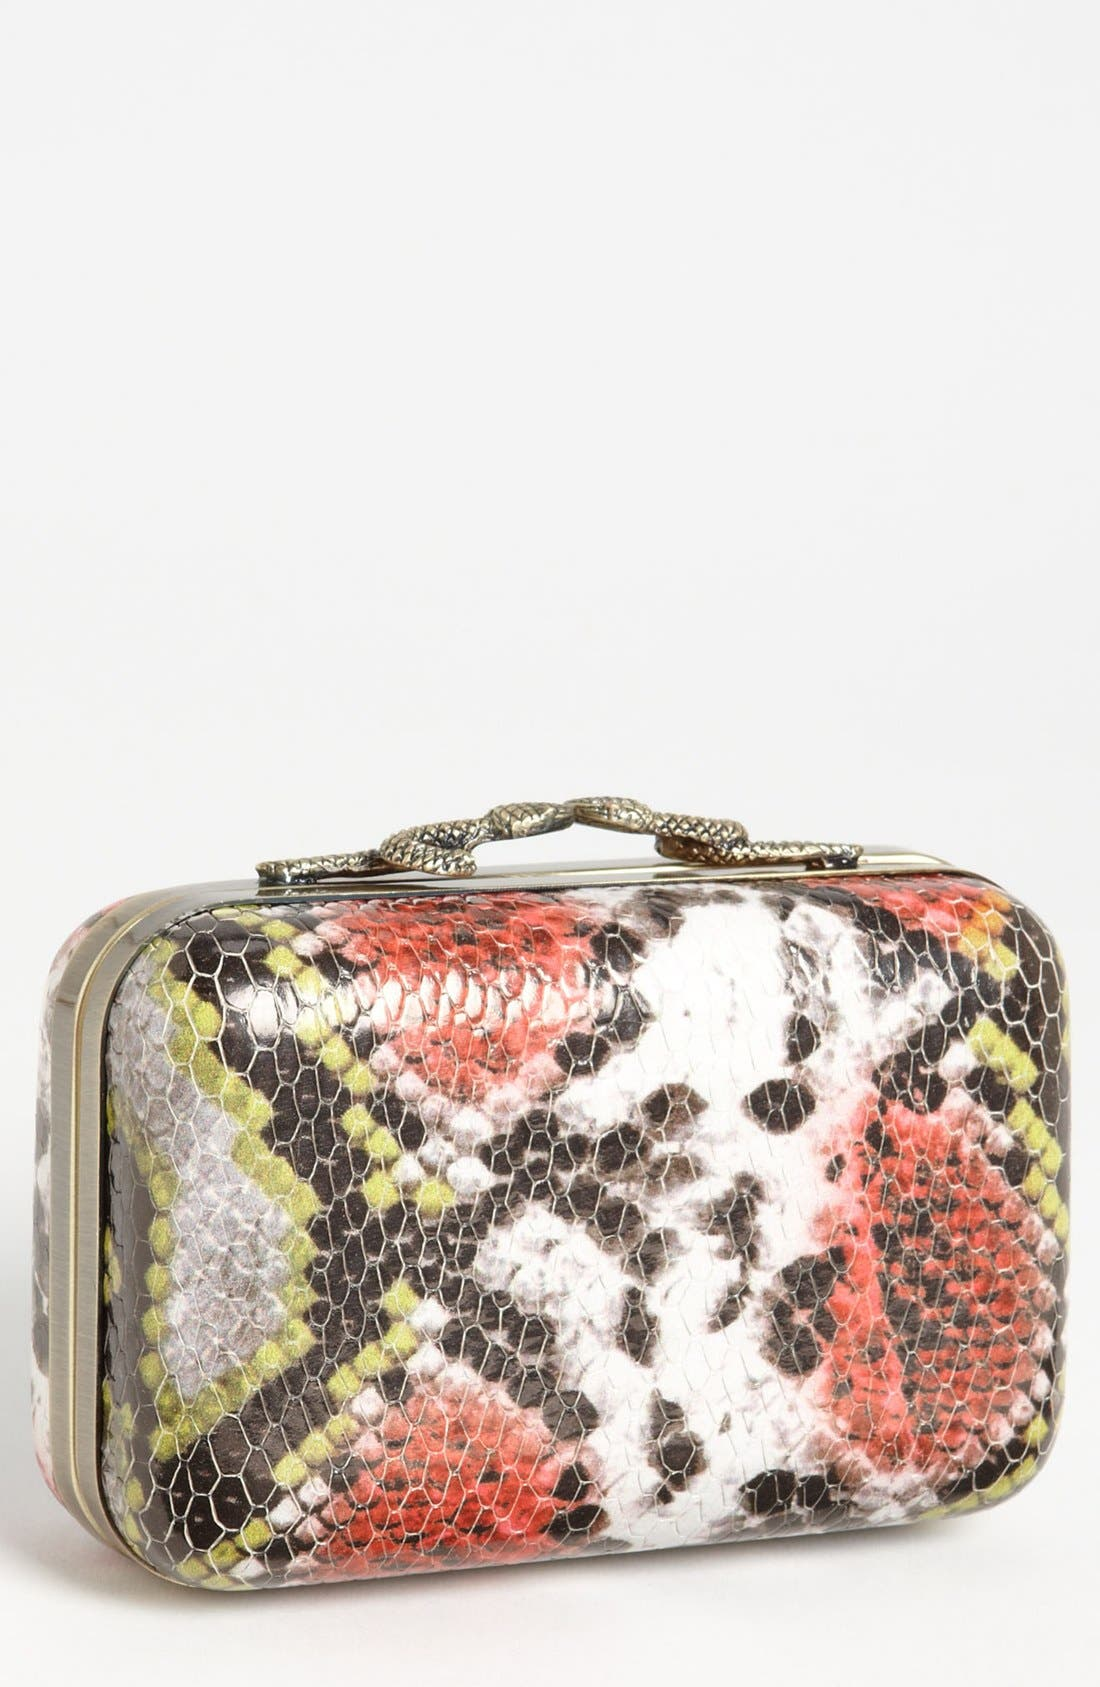 Main Image - House of Harlow 1960 'Marley' Snake Print Clutch